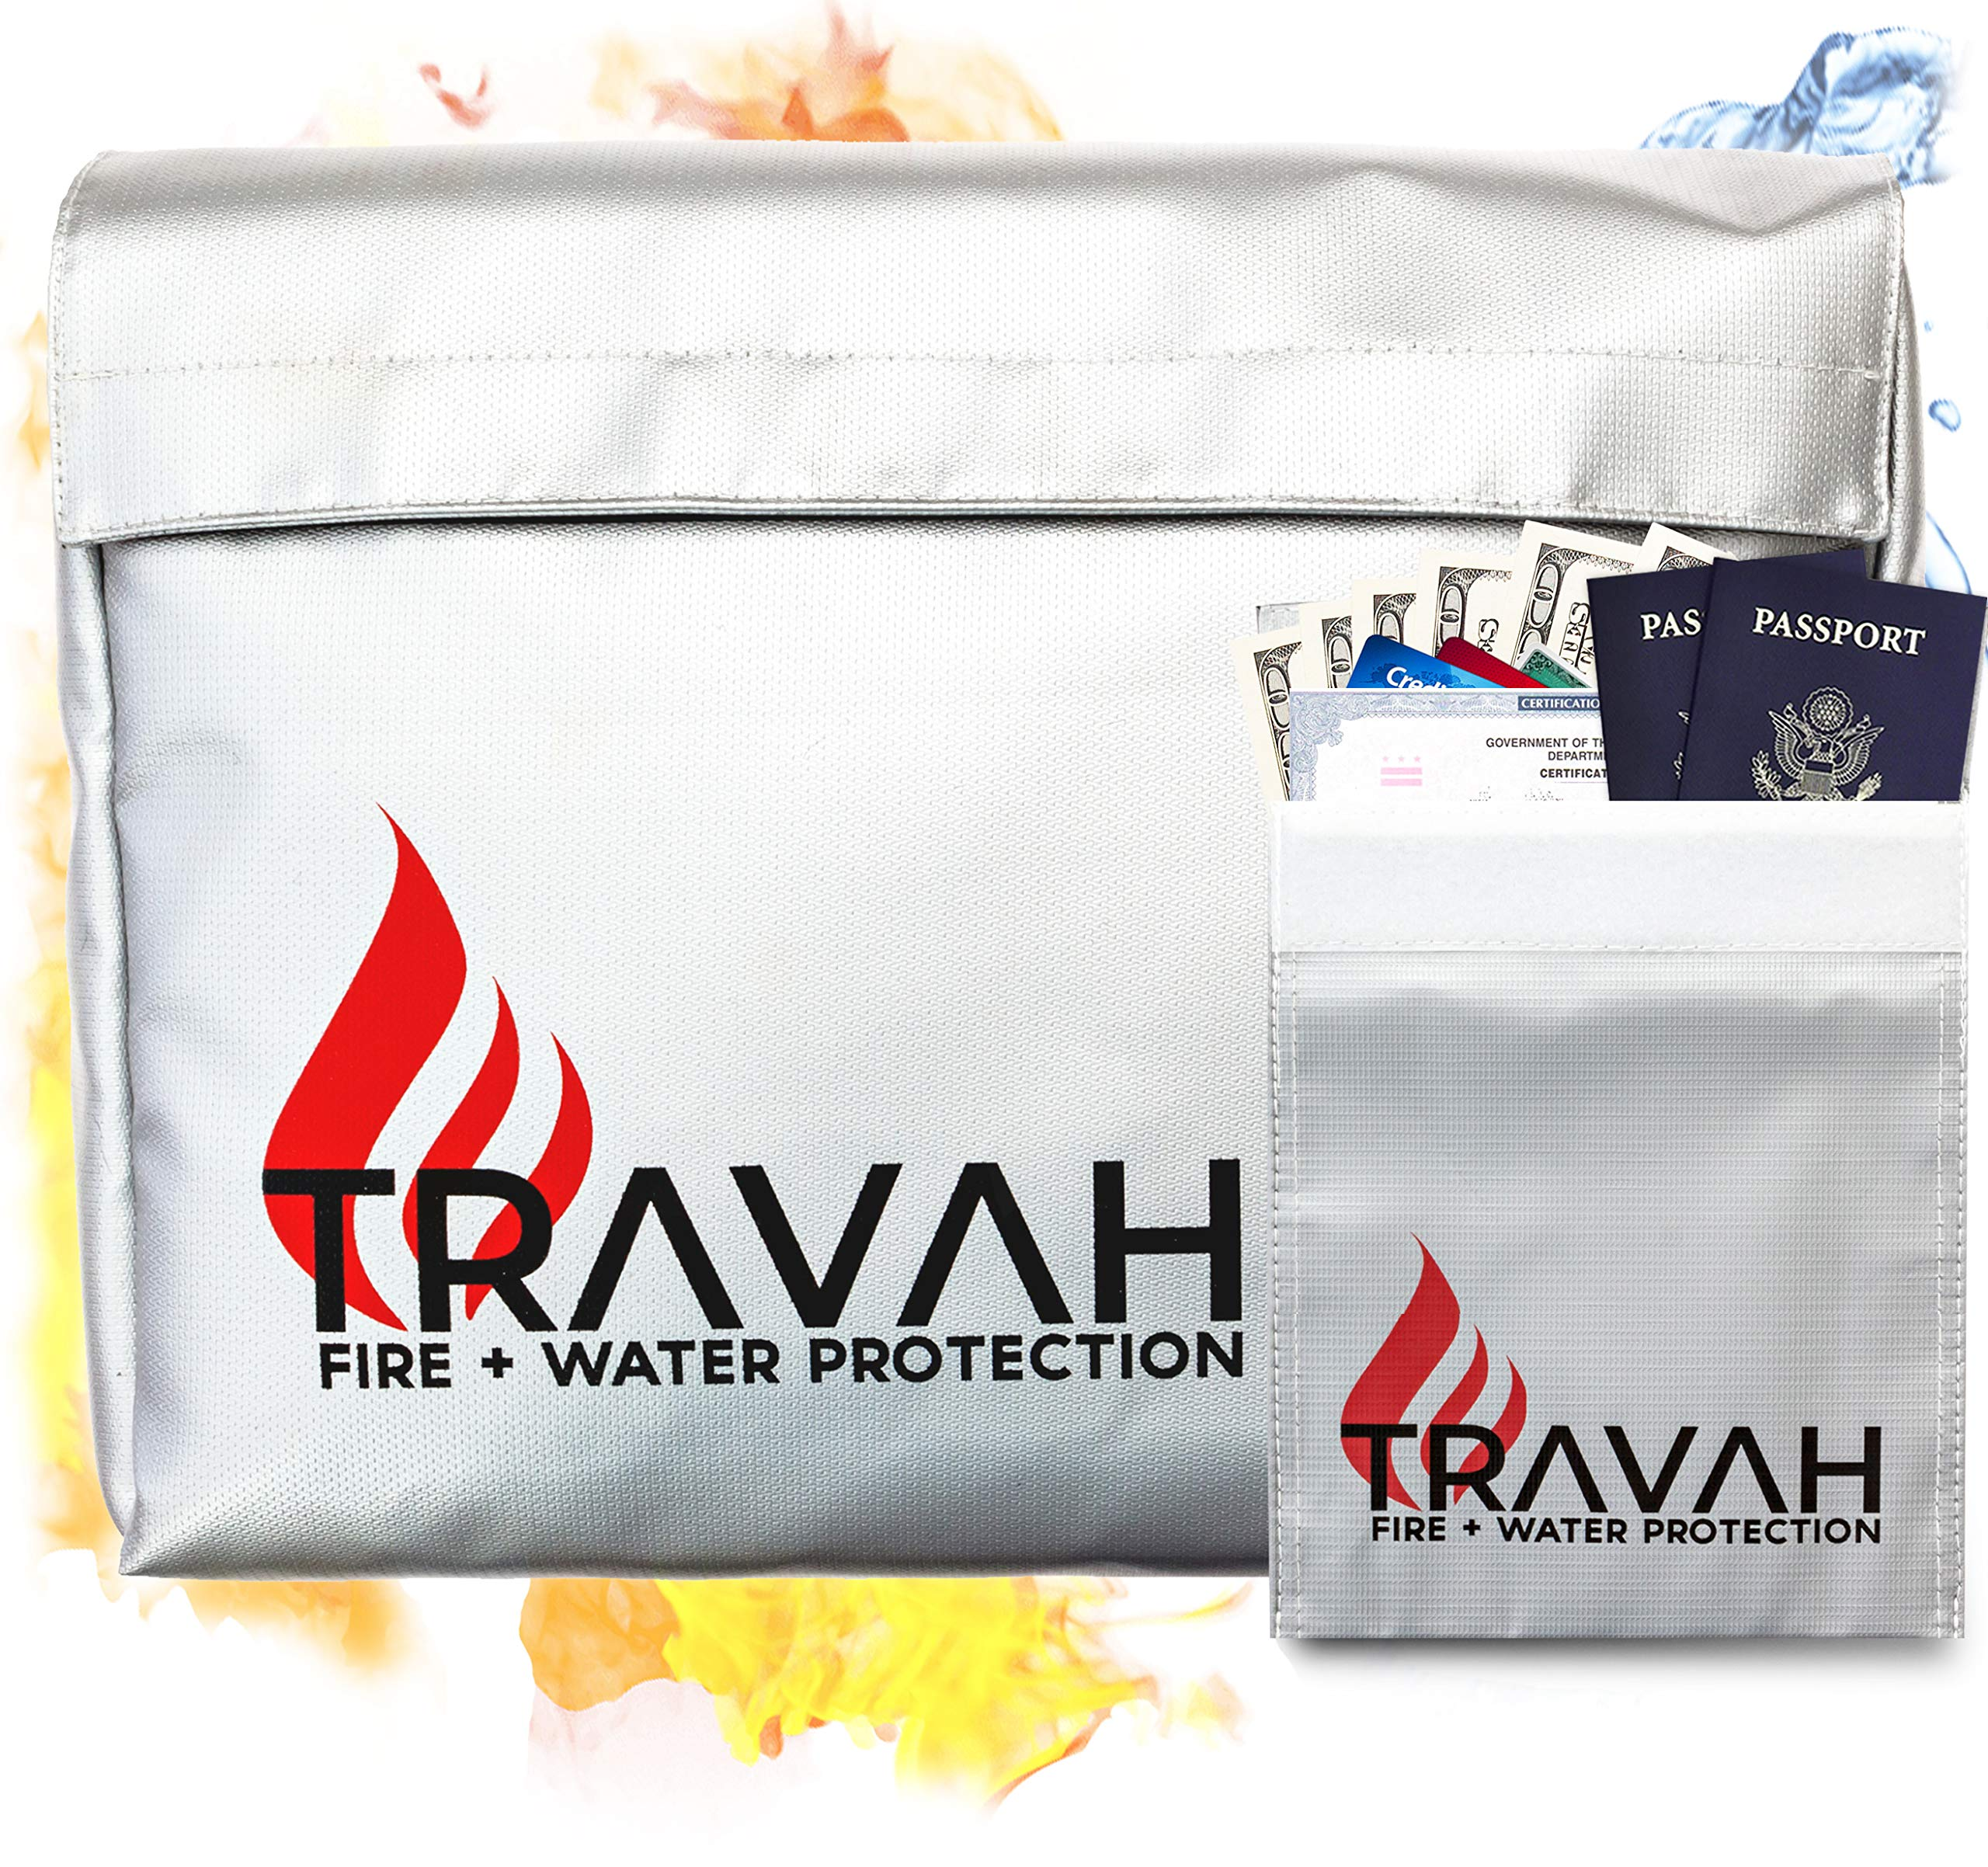 Fireproof Document Bag - Large & Small Fire Water Resistant Bag Set Safe Storage for Home & Office XL 15''x11''x4'' Important File Documents Holder | Money Envelope Security Pouch Jewelry Cash Passport